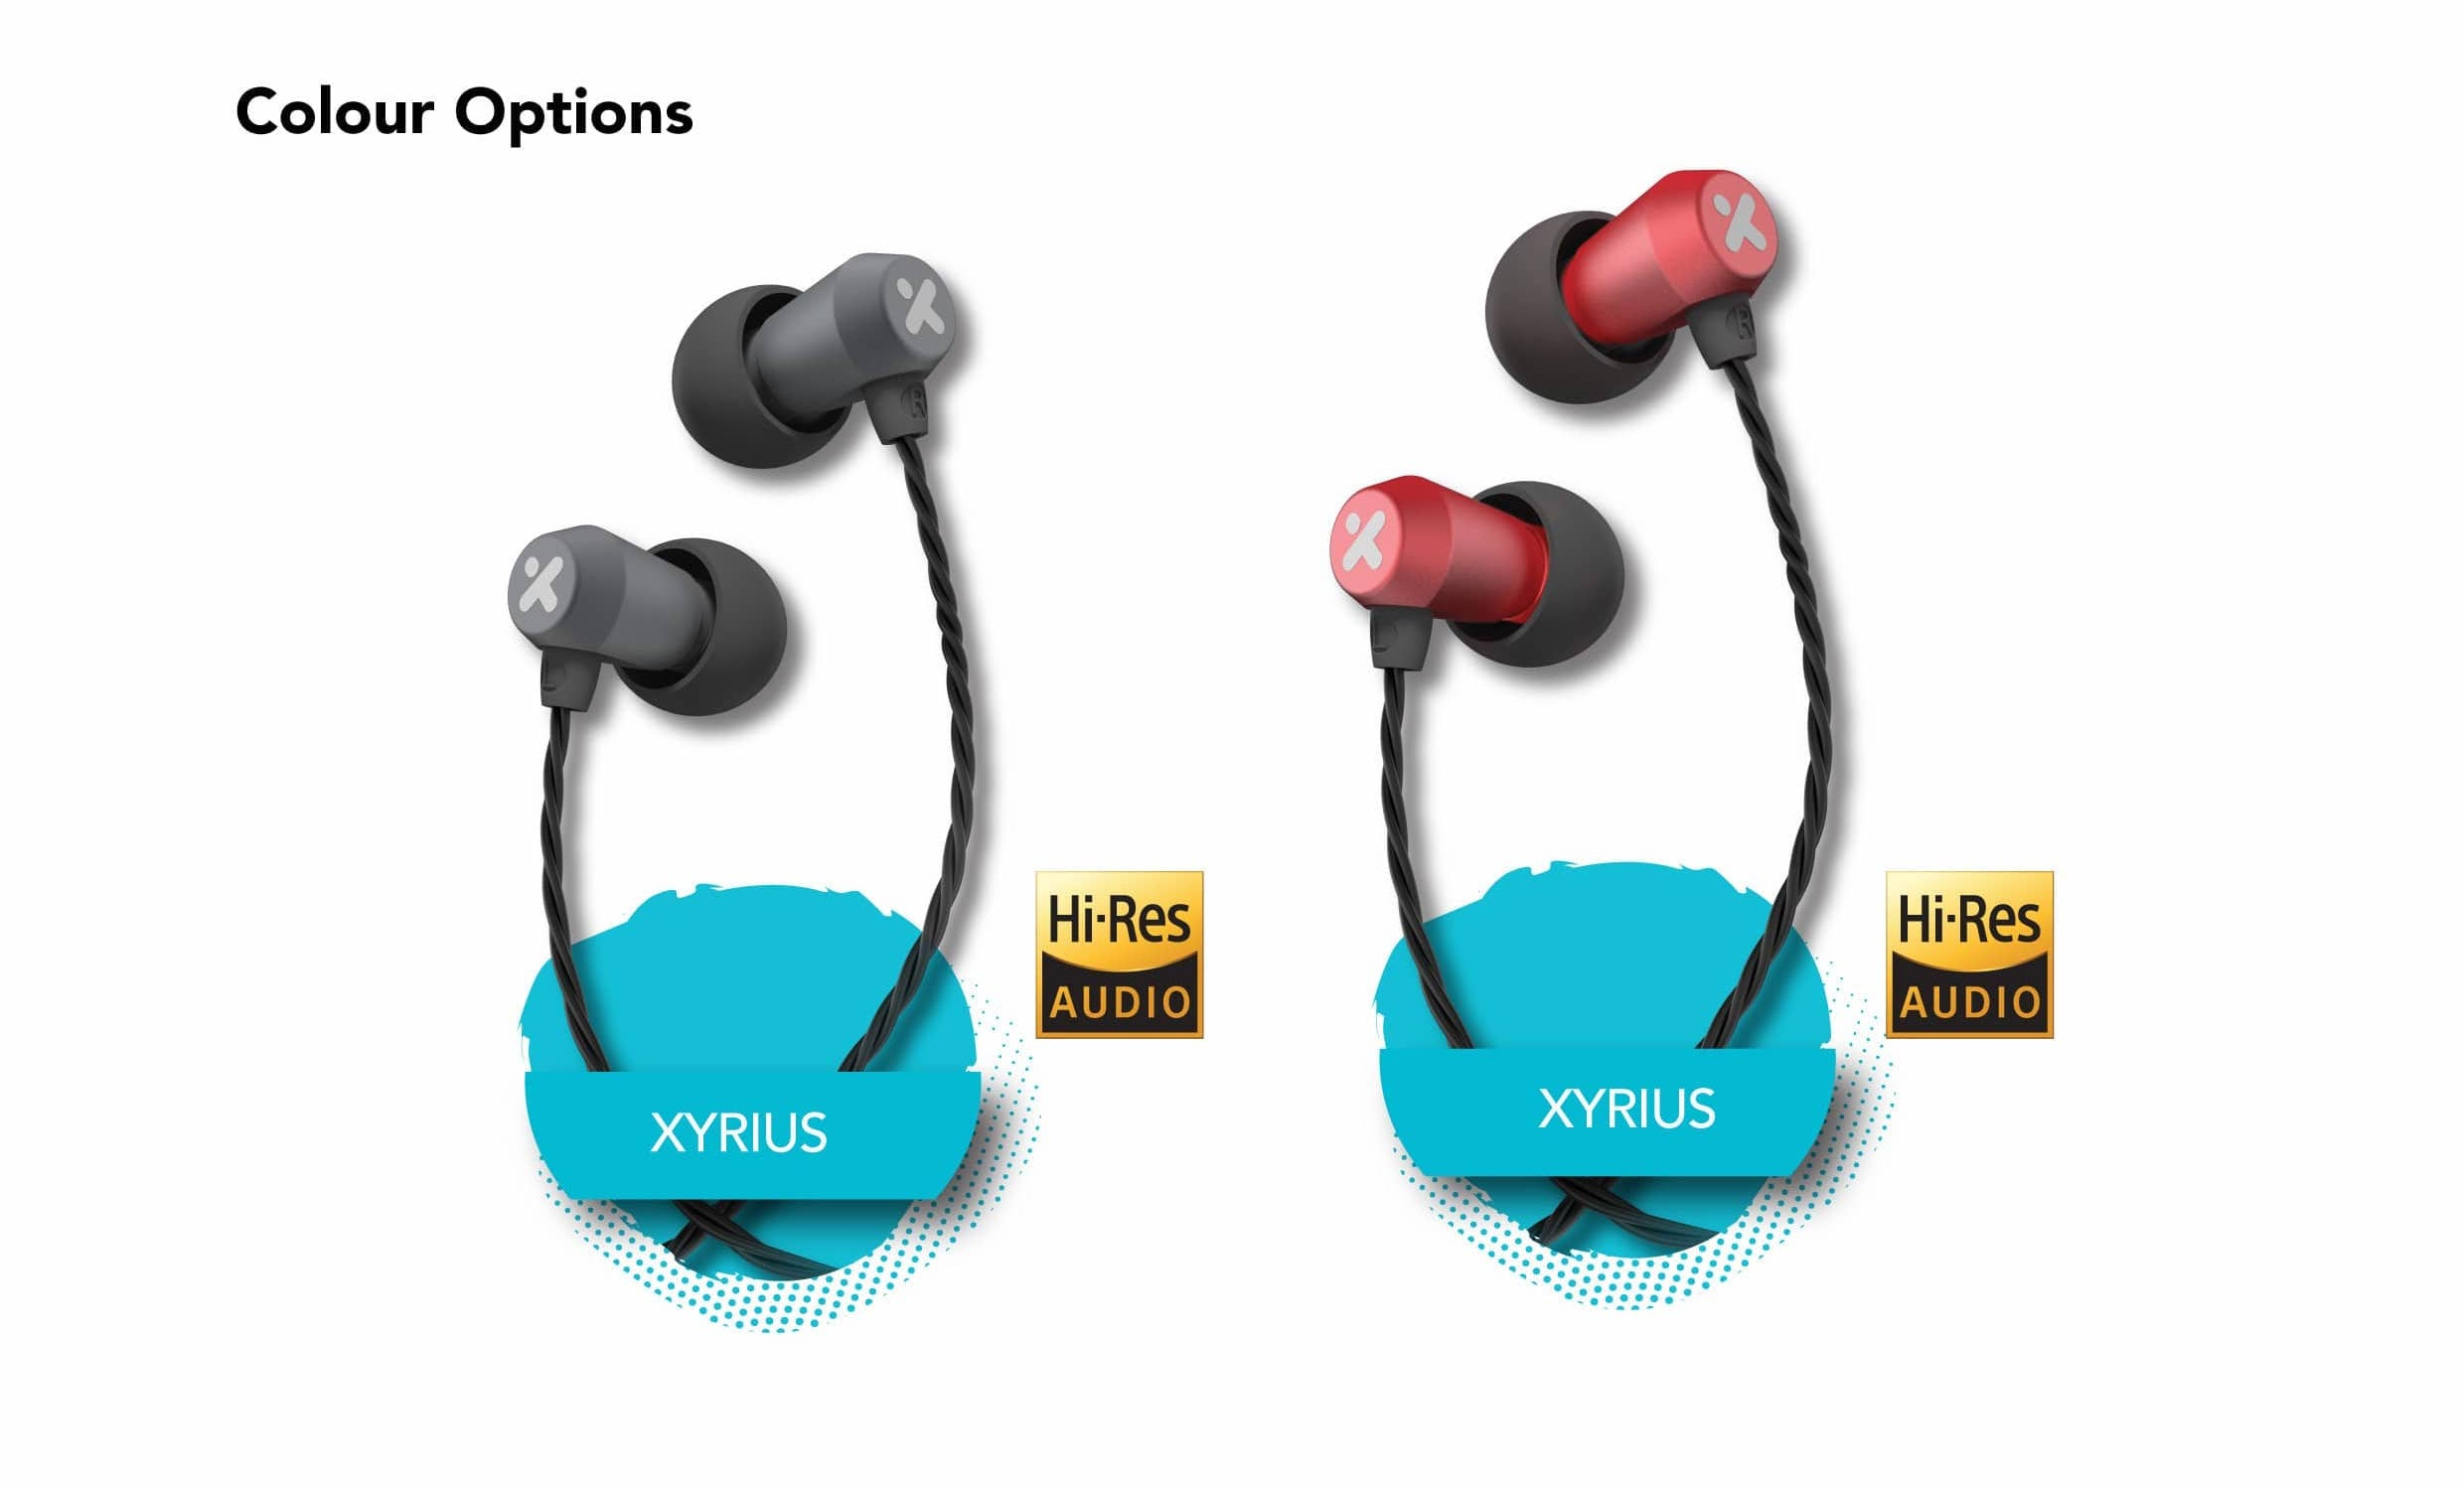 X-mini-Xyrius-Balanced-Hi-Res-Audio-Wired-Xoundbuds-earphones-Colour-Option